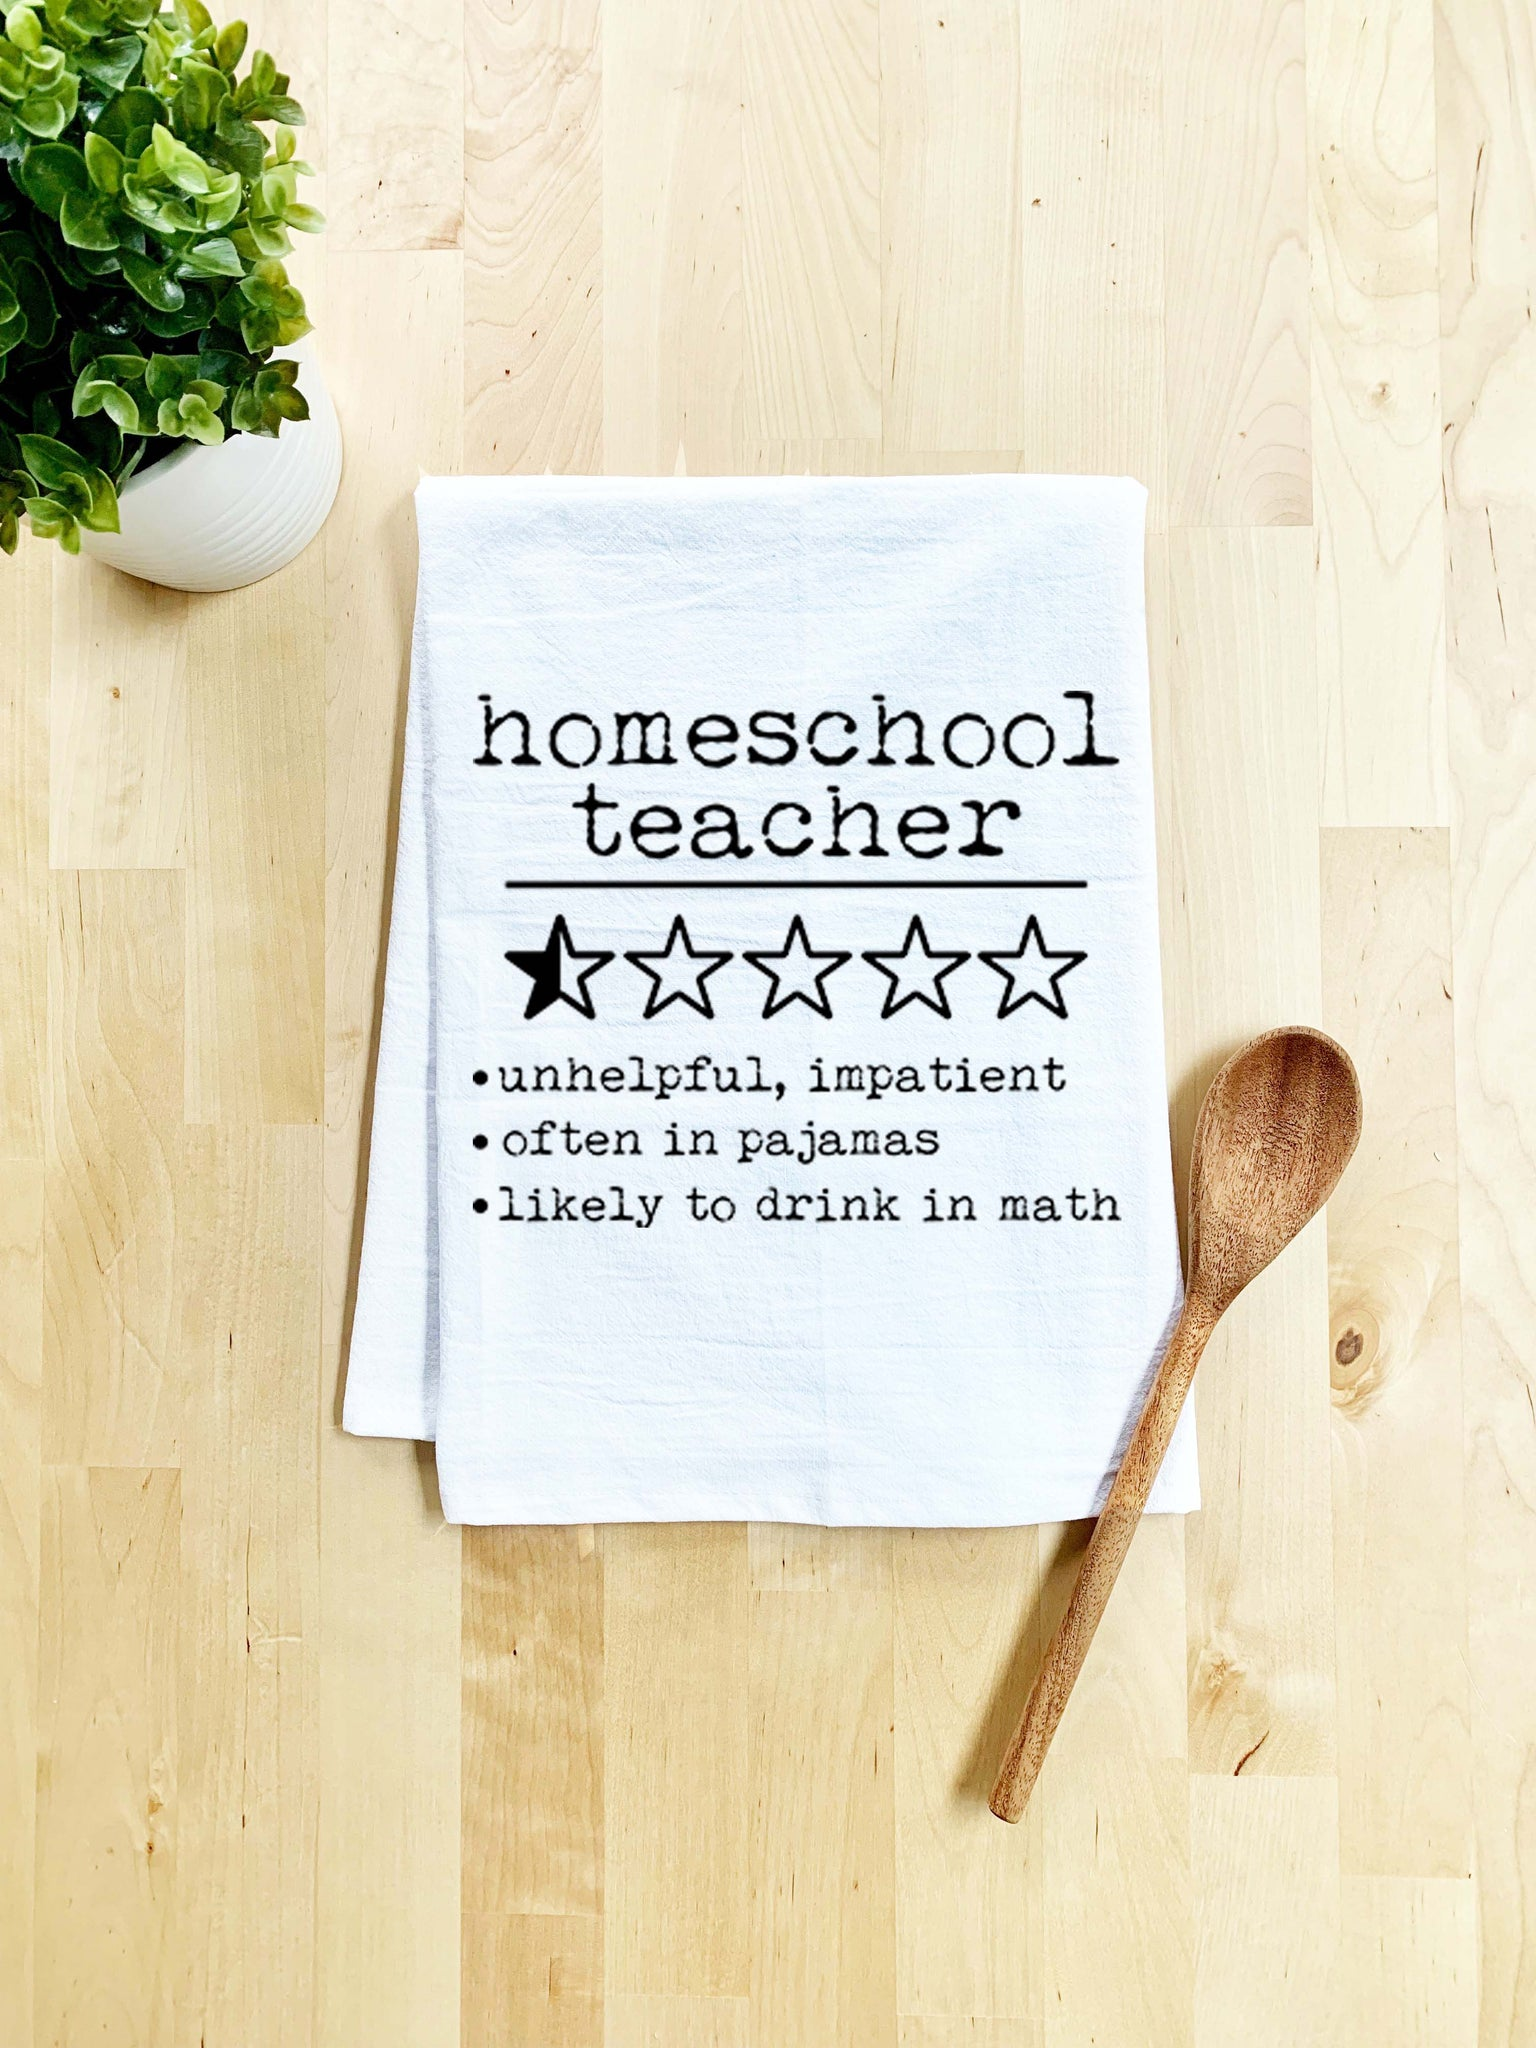 Homeschool Teacher Review Dish Towel - White Or Gray - MoonlightMakers